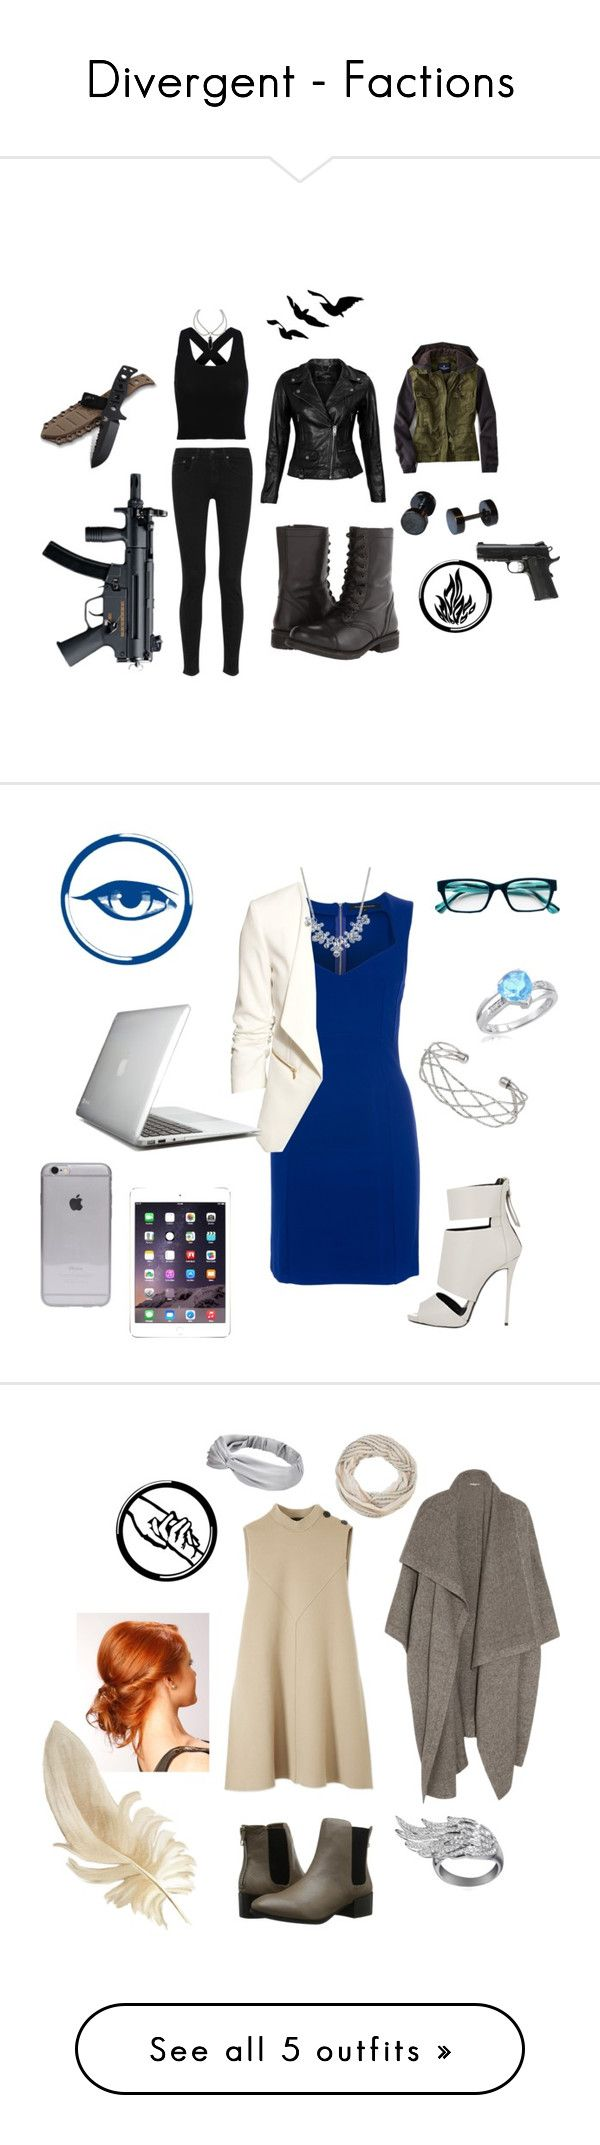 """Divergent - Factions"" by redheartqueen ❤ liked on Polyvore featuring rag & bone, VIPARO, American Eagle Outfitters, Steve Madden, French Connection, Giuseppe Zanotti, H&M, Wallis, Givenchy and Corinne McCormack"